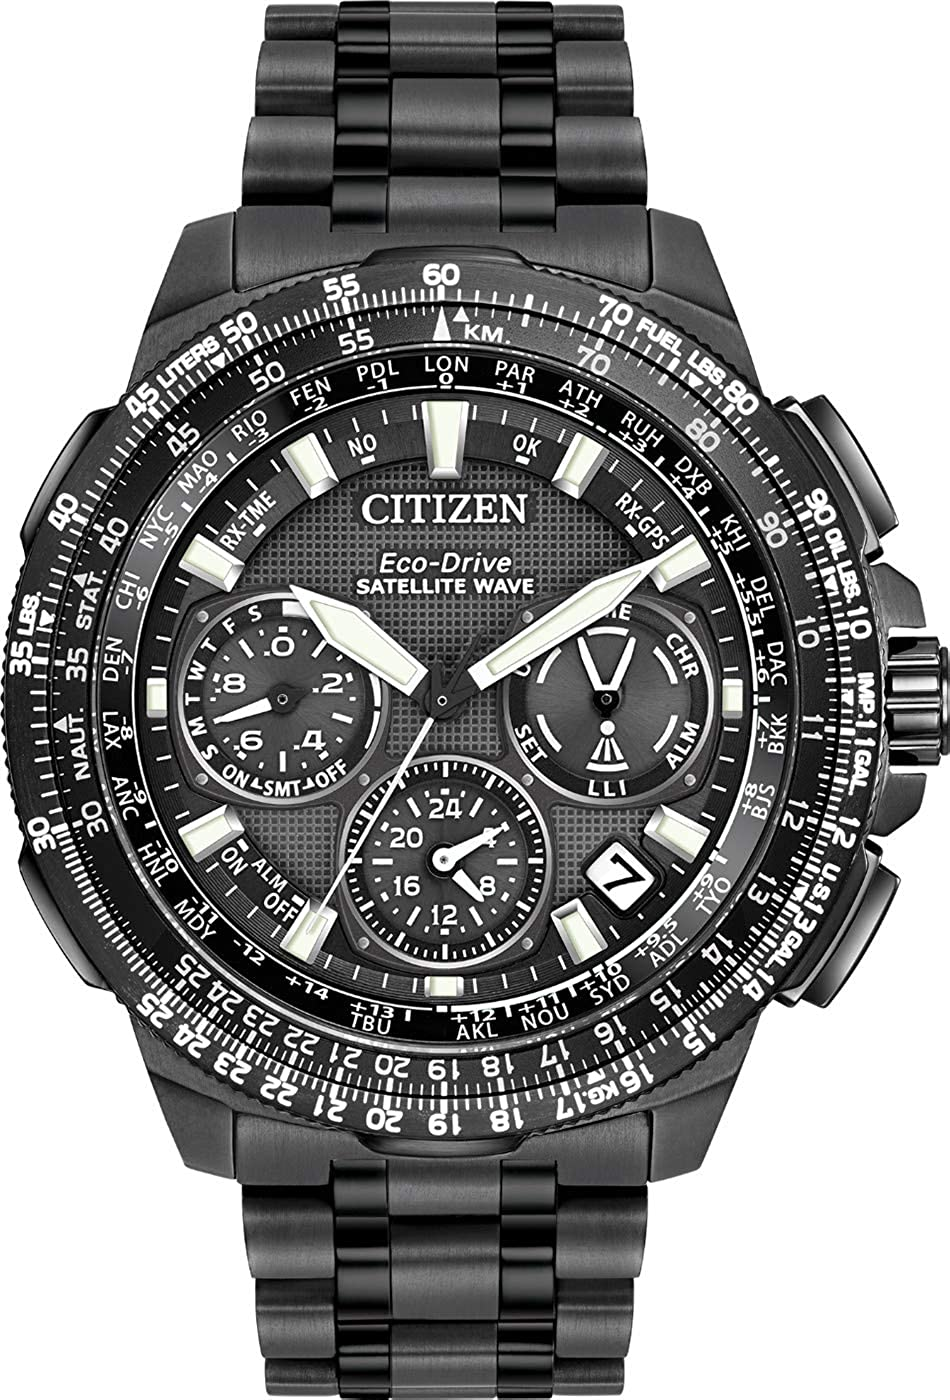 Citizen Eco-Drive Analogue Round Black Dial with Sapphire Crystal and Black Steel Black PVD Band 200 m Water Resistant Quartz Date Chronograph 47 mm Business Luxury Men's Wrist Watch